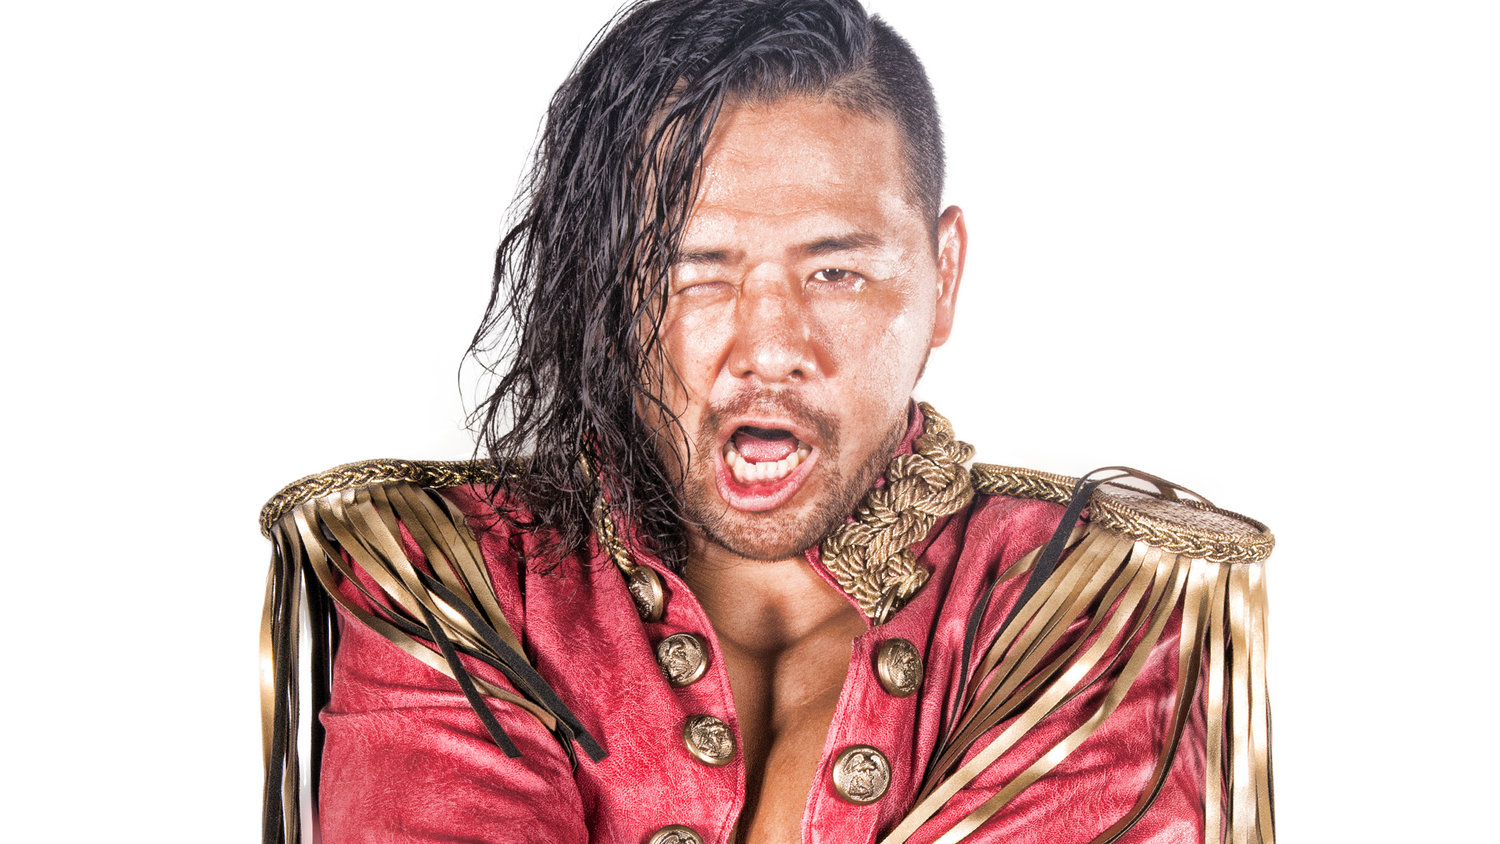 Get Hype For WRESTLEMANIA With This Awesome Metal Version Of Shinsuke Nakamura's Theme